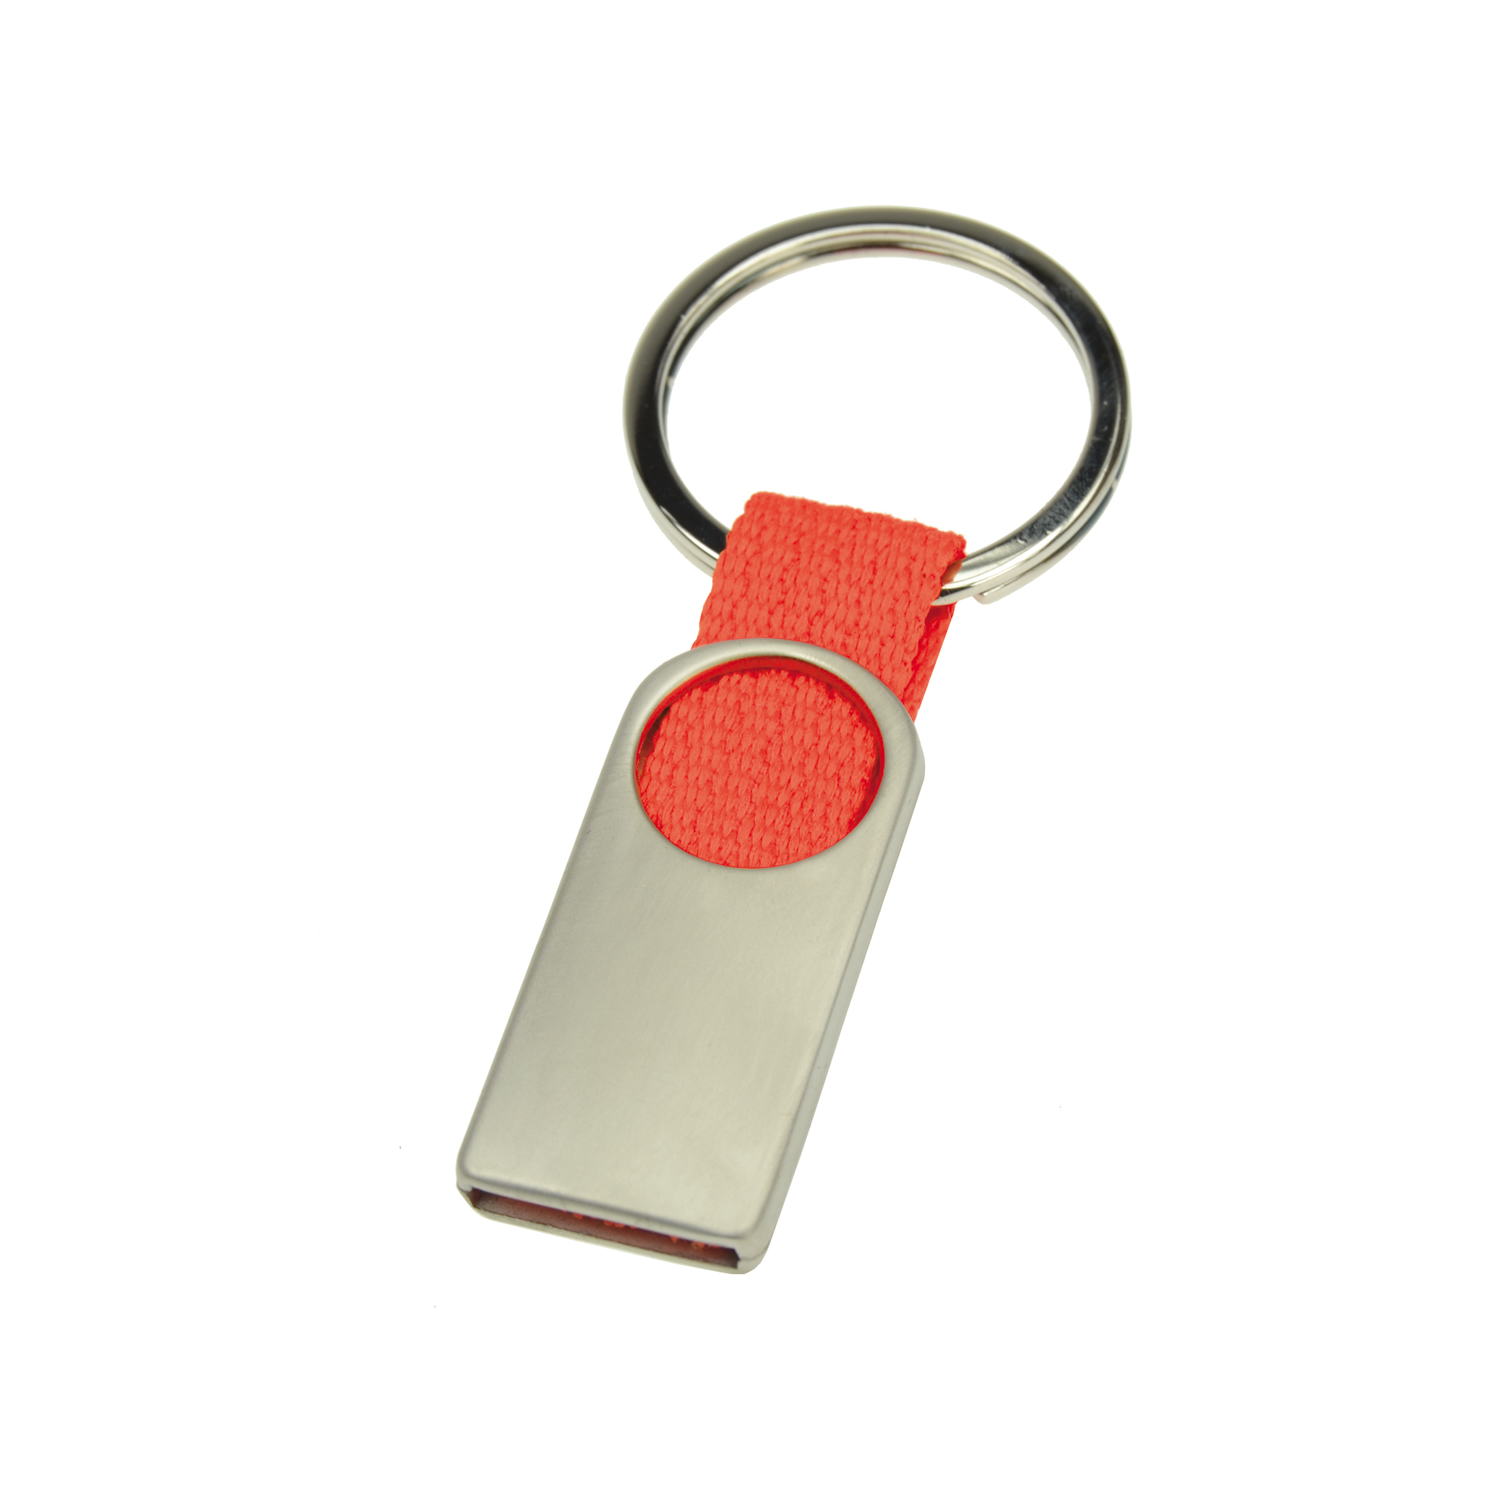 Keychain 007 (Metal keyring) - hmi46007-04 (Red)